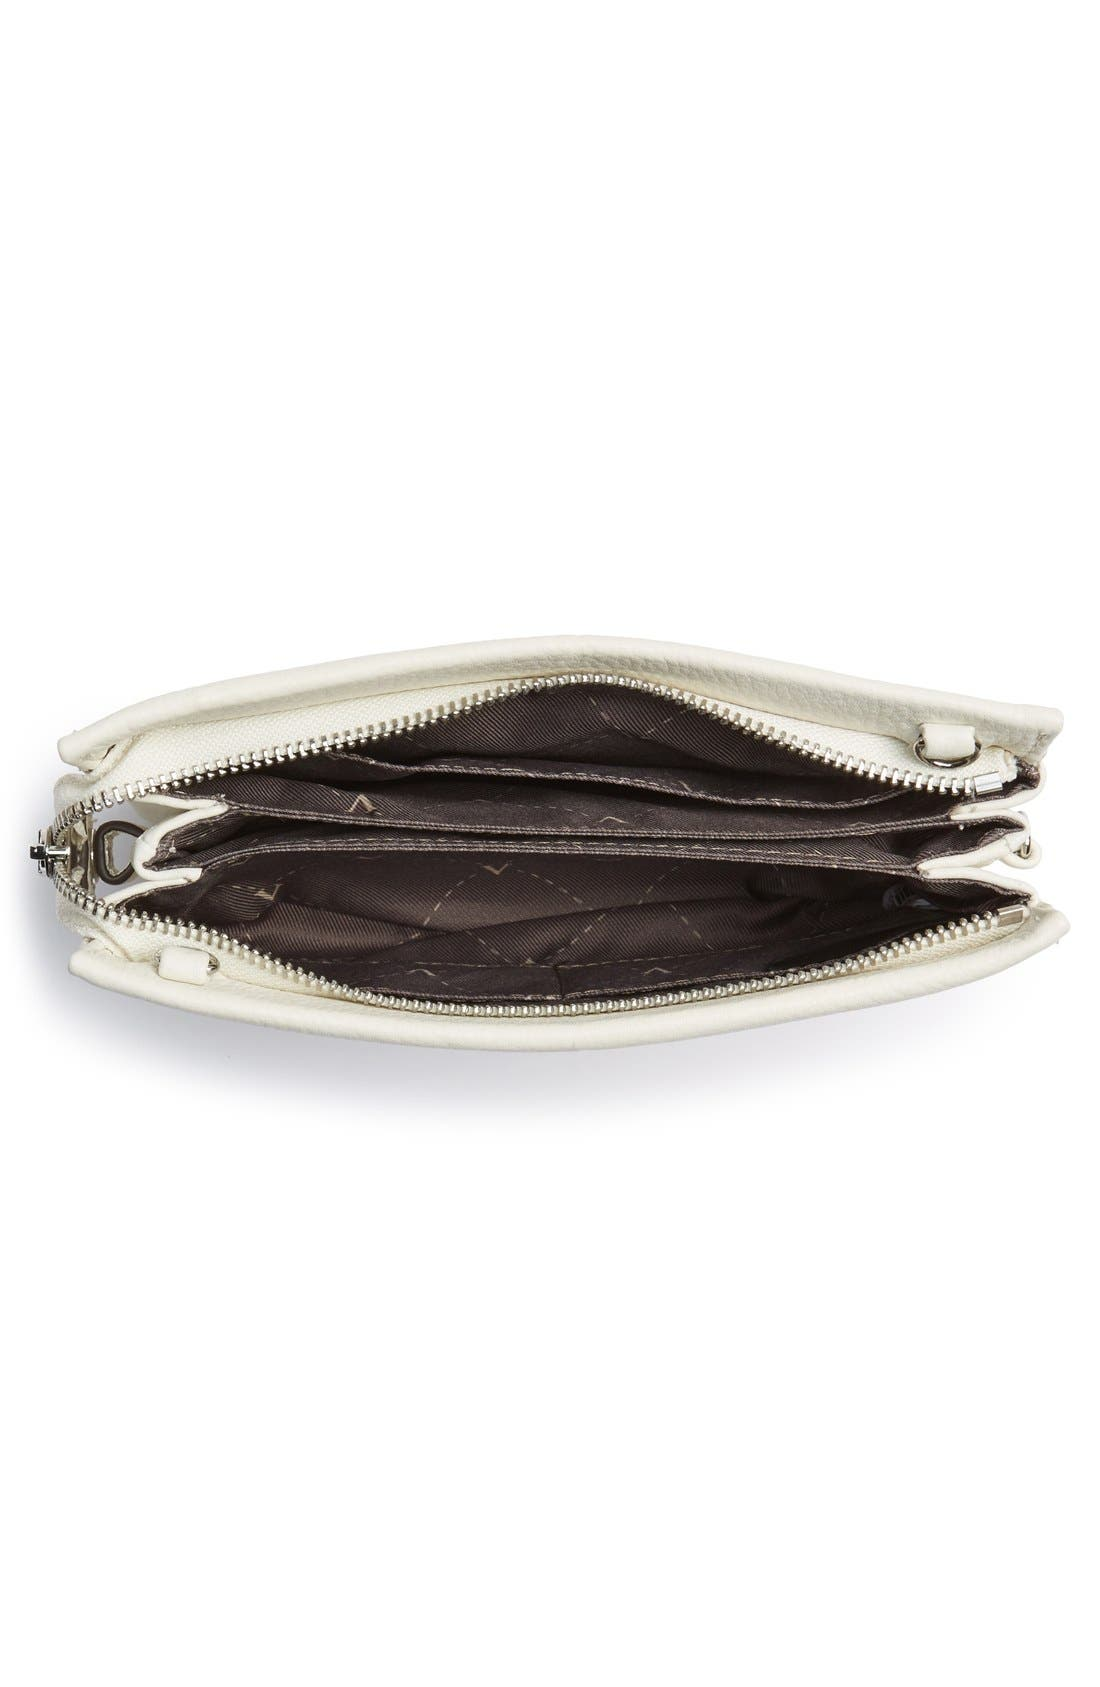 'Cami' Leather Crossbody Bag,                             Alternate thumbnail 108, color,